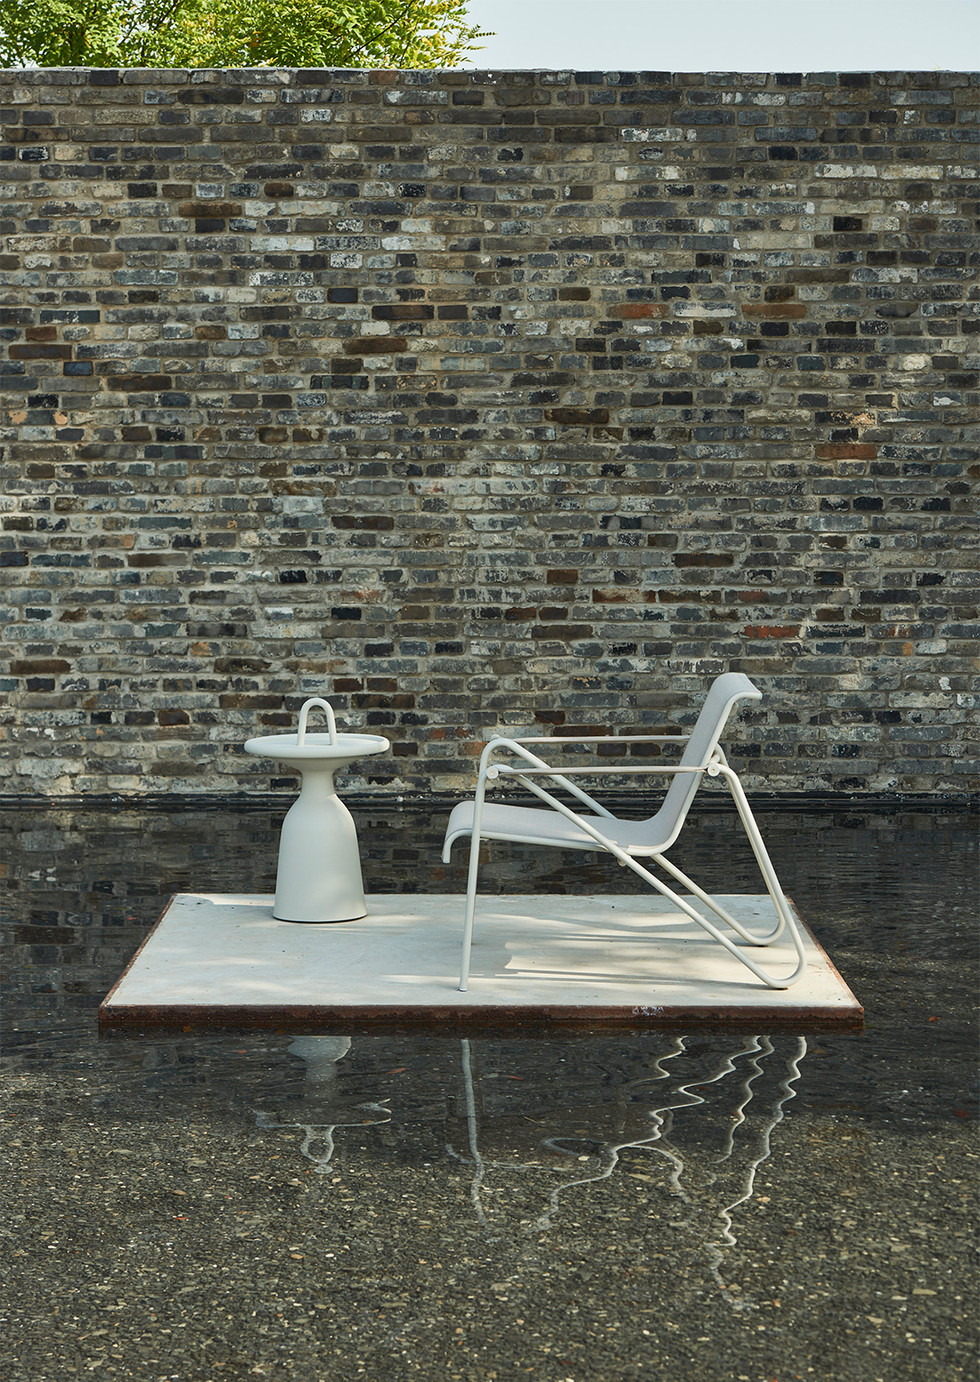 wave chair and traytable